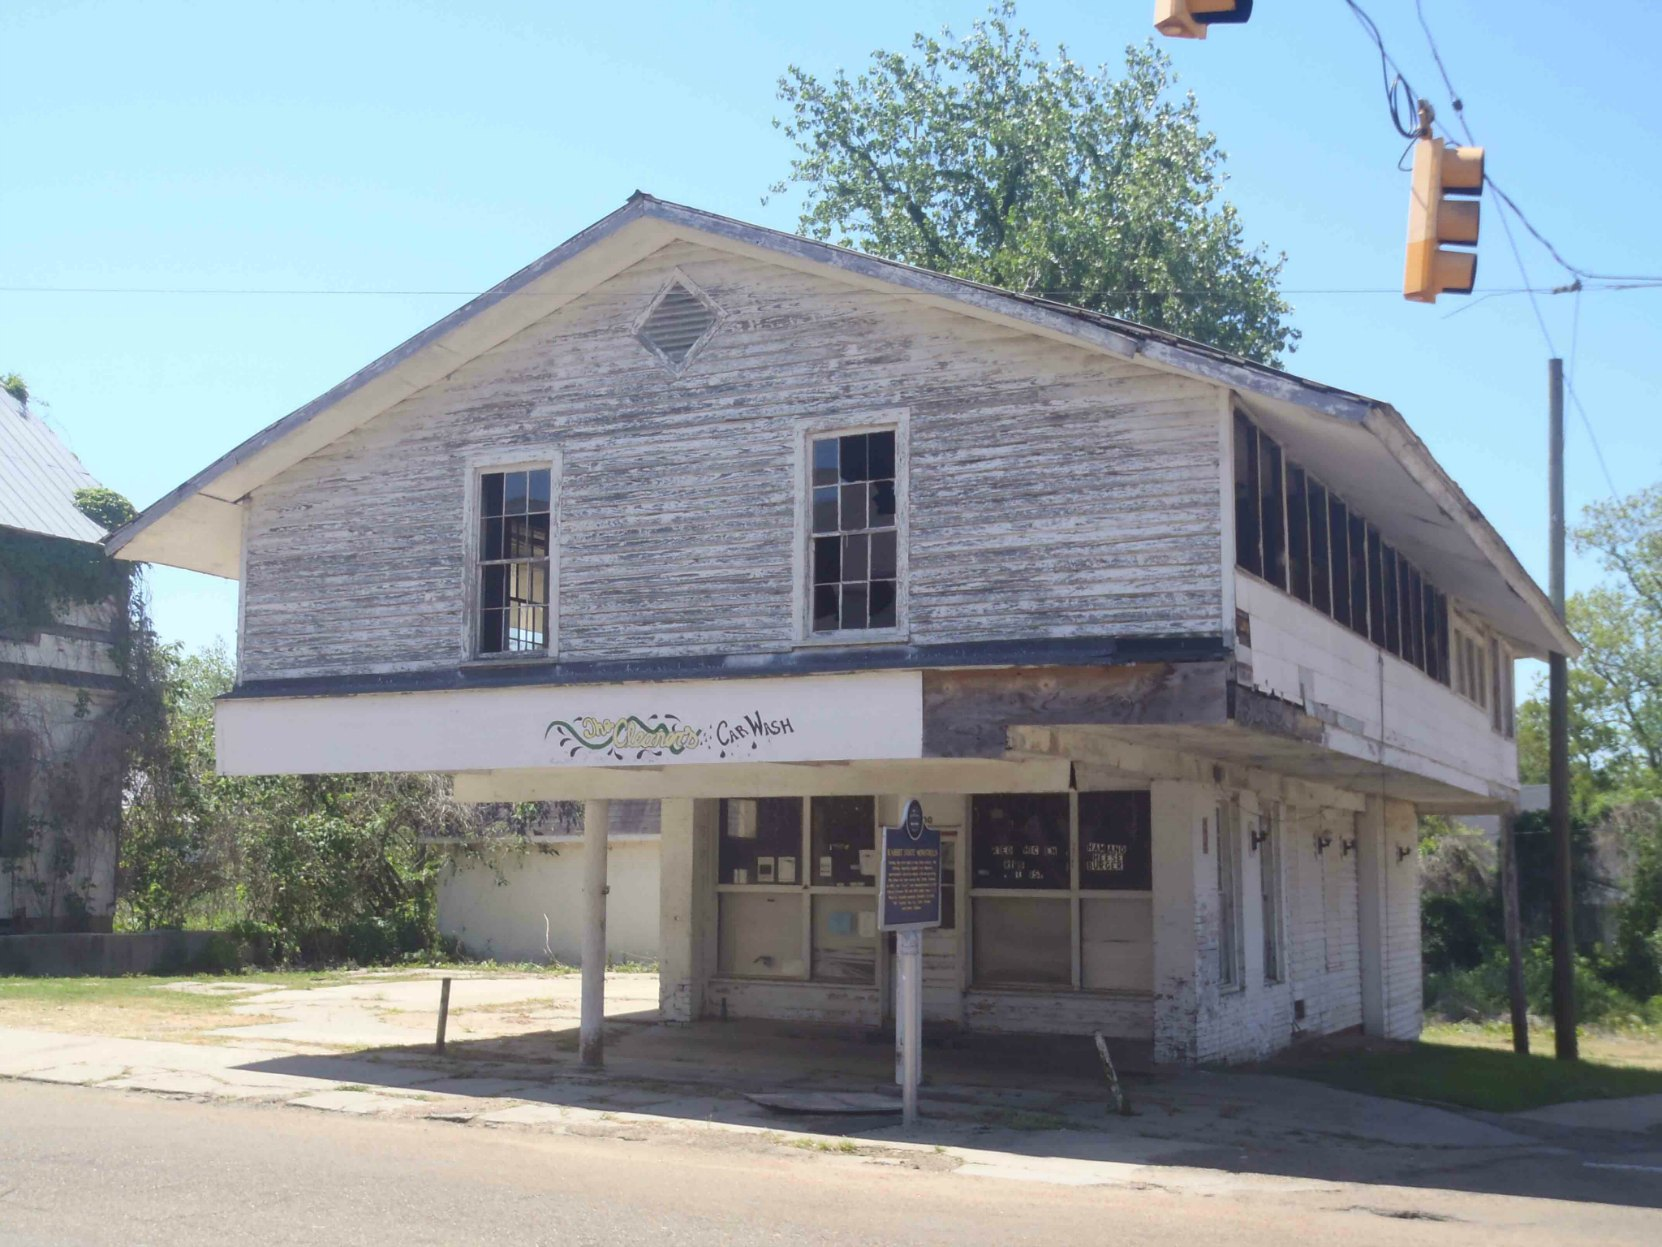 Mississippi Blues Trail marker for the Rabbit Foot Minstrels, Port Gibson, Mississippi. Since Our last visit to Port Gibson, the building in this photo was destroyed by a fire (an arson) in September 2015.